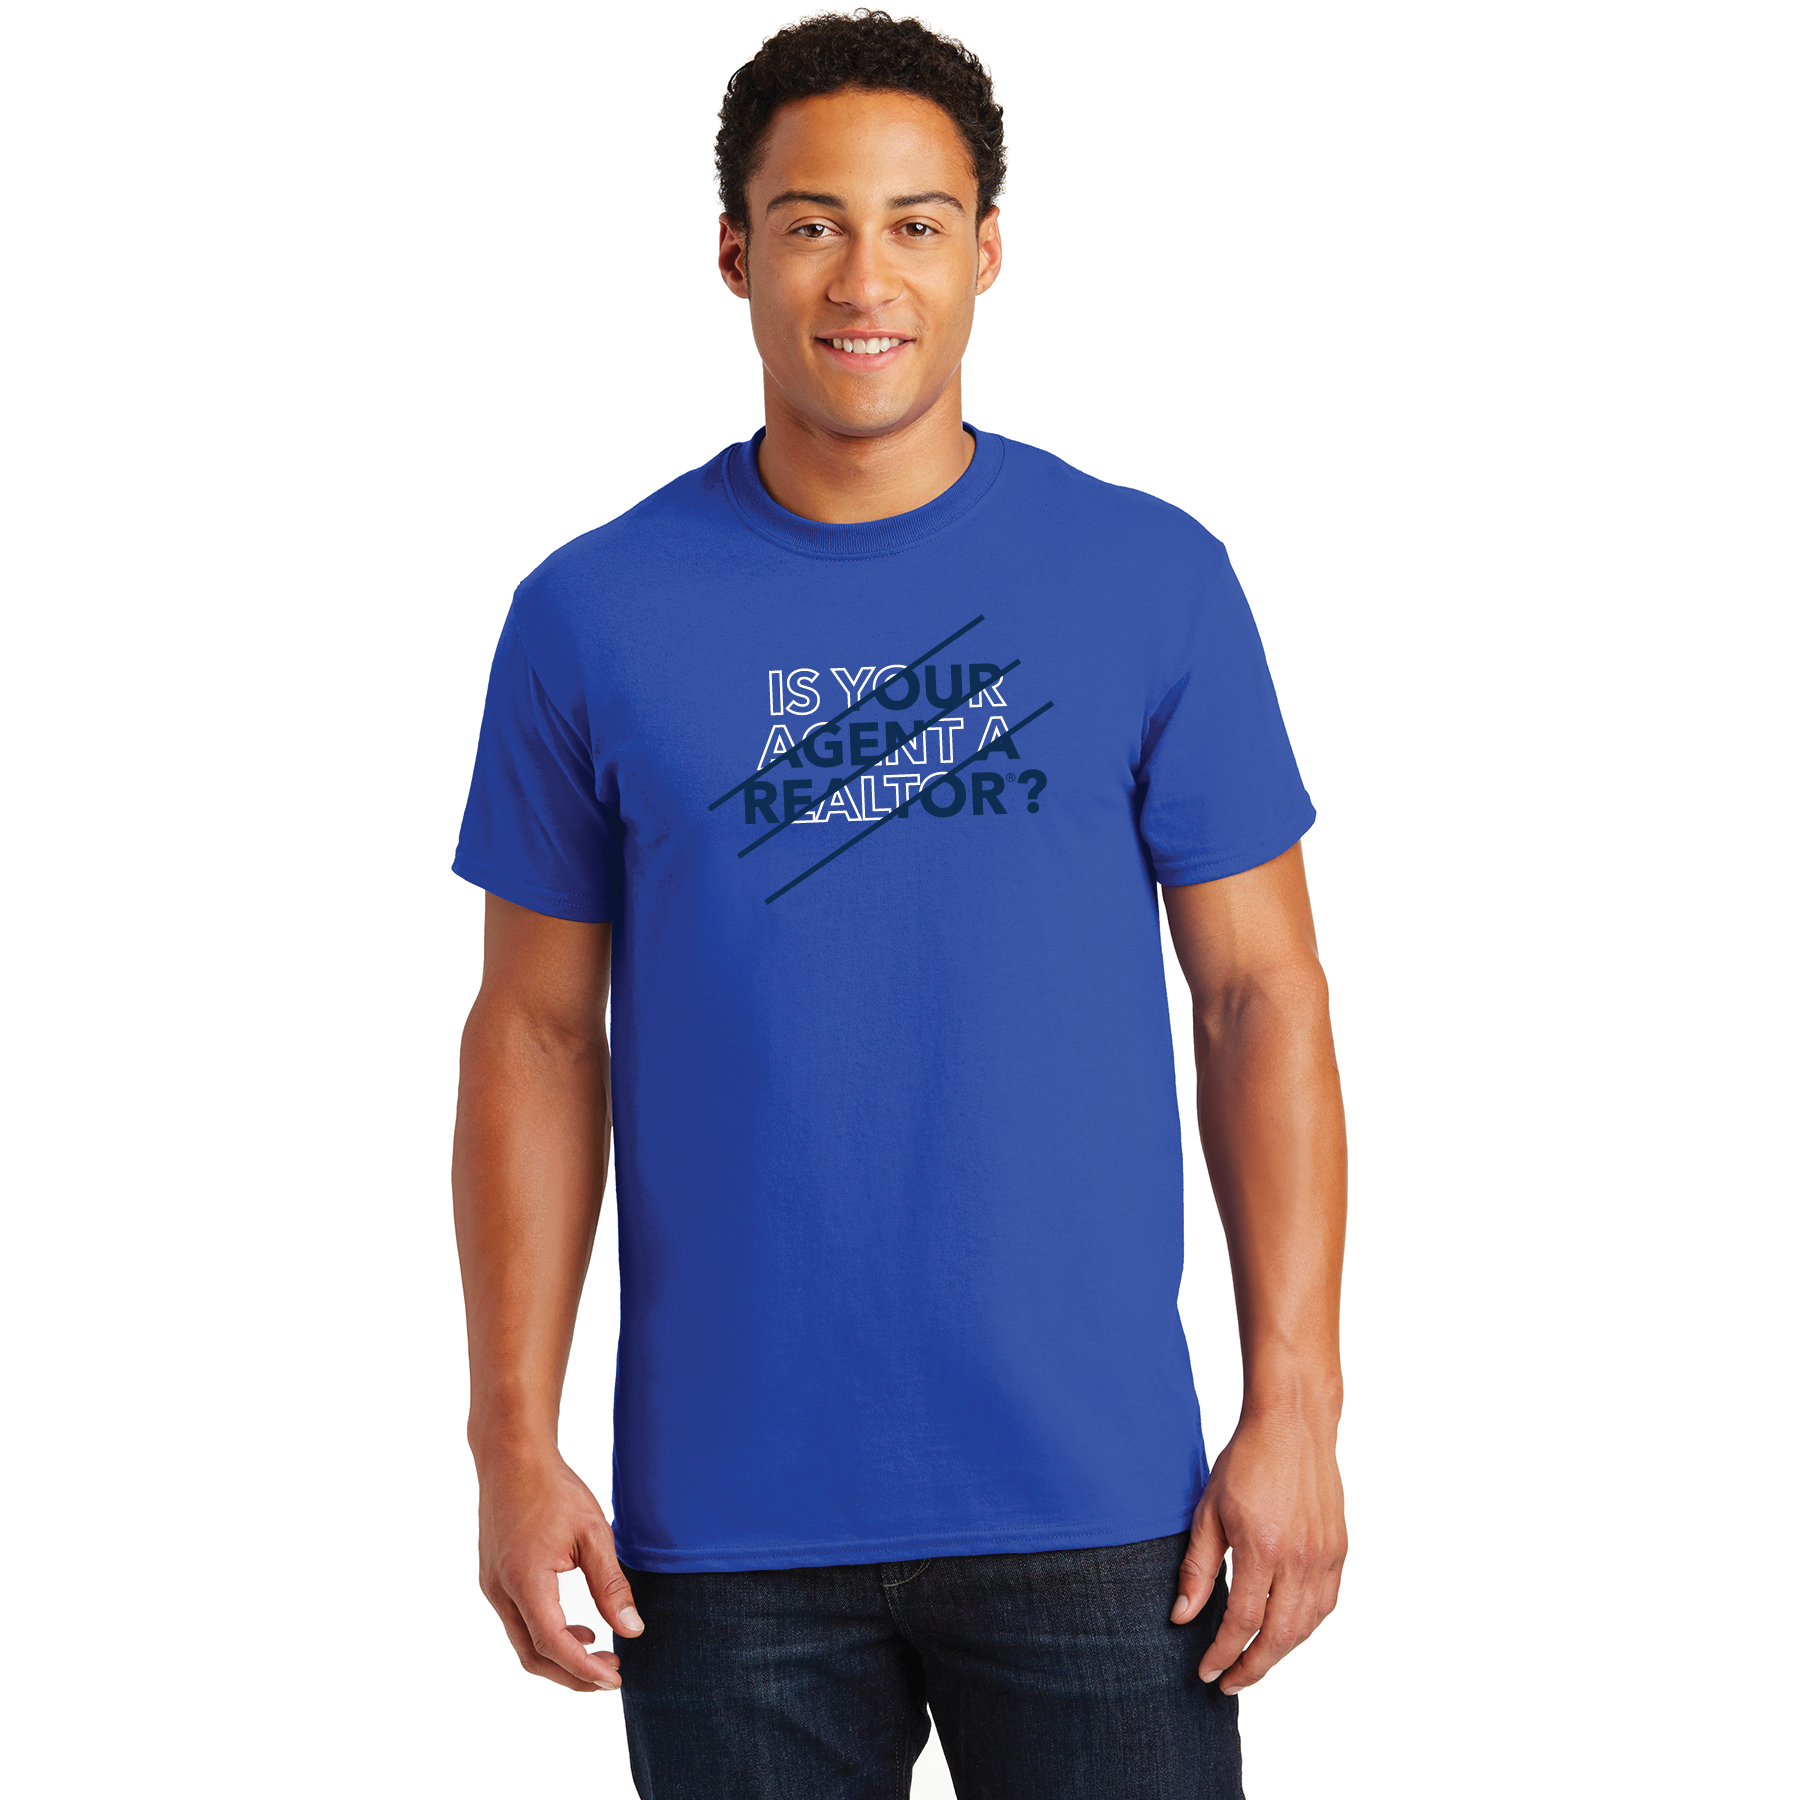 Is Your Agent a REALTOR® Royal Blue Tee Shirt TRSFR,twwr,ThatsWhoWeR,That's,TWWR,ThatWho,That'sWho,Twwr,Thats,Whos,We,Ares,Tees,T-shirt,Tee,Casual,Values,Tees,NewEra,Longs,Sleeves